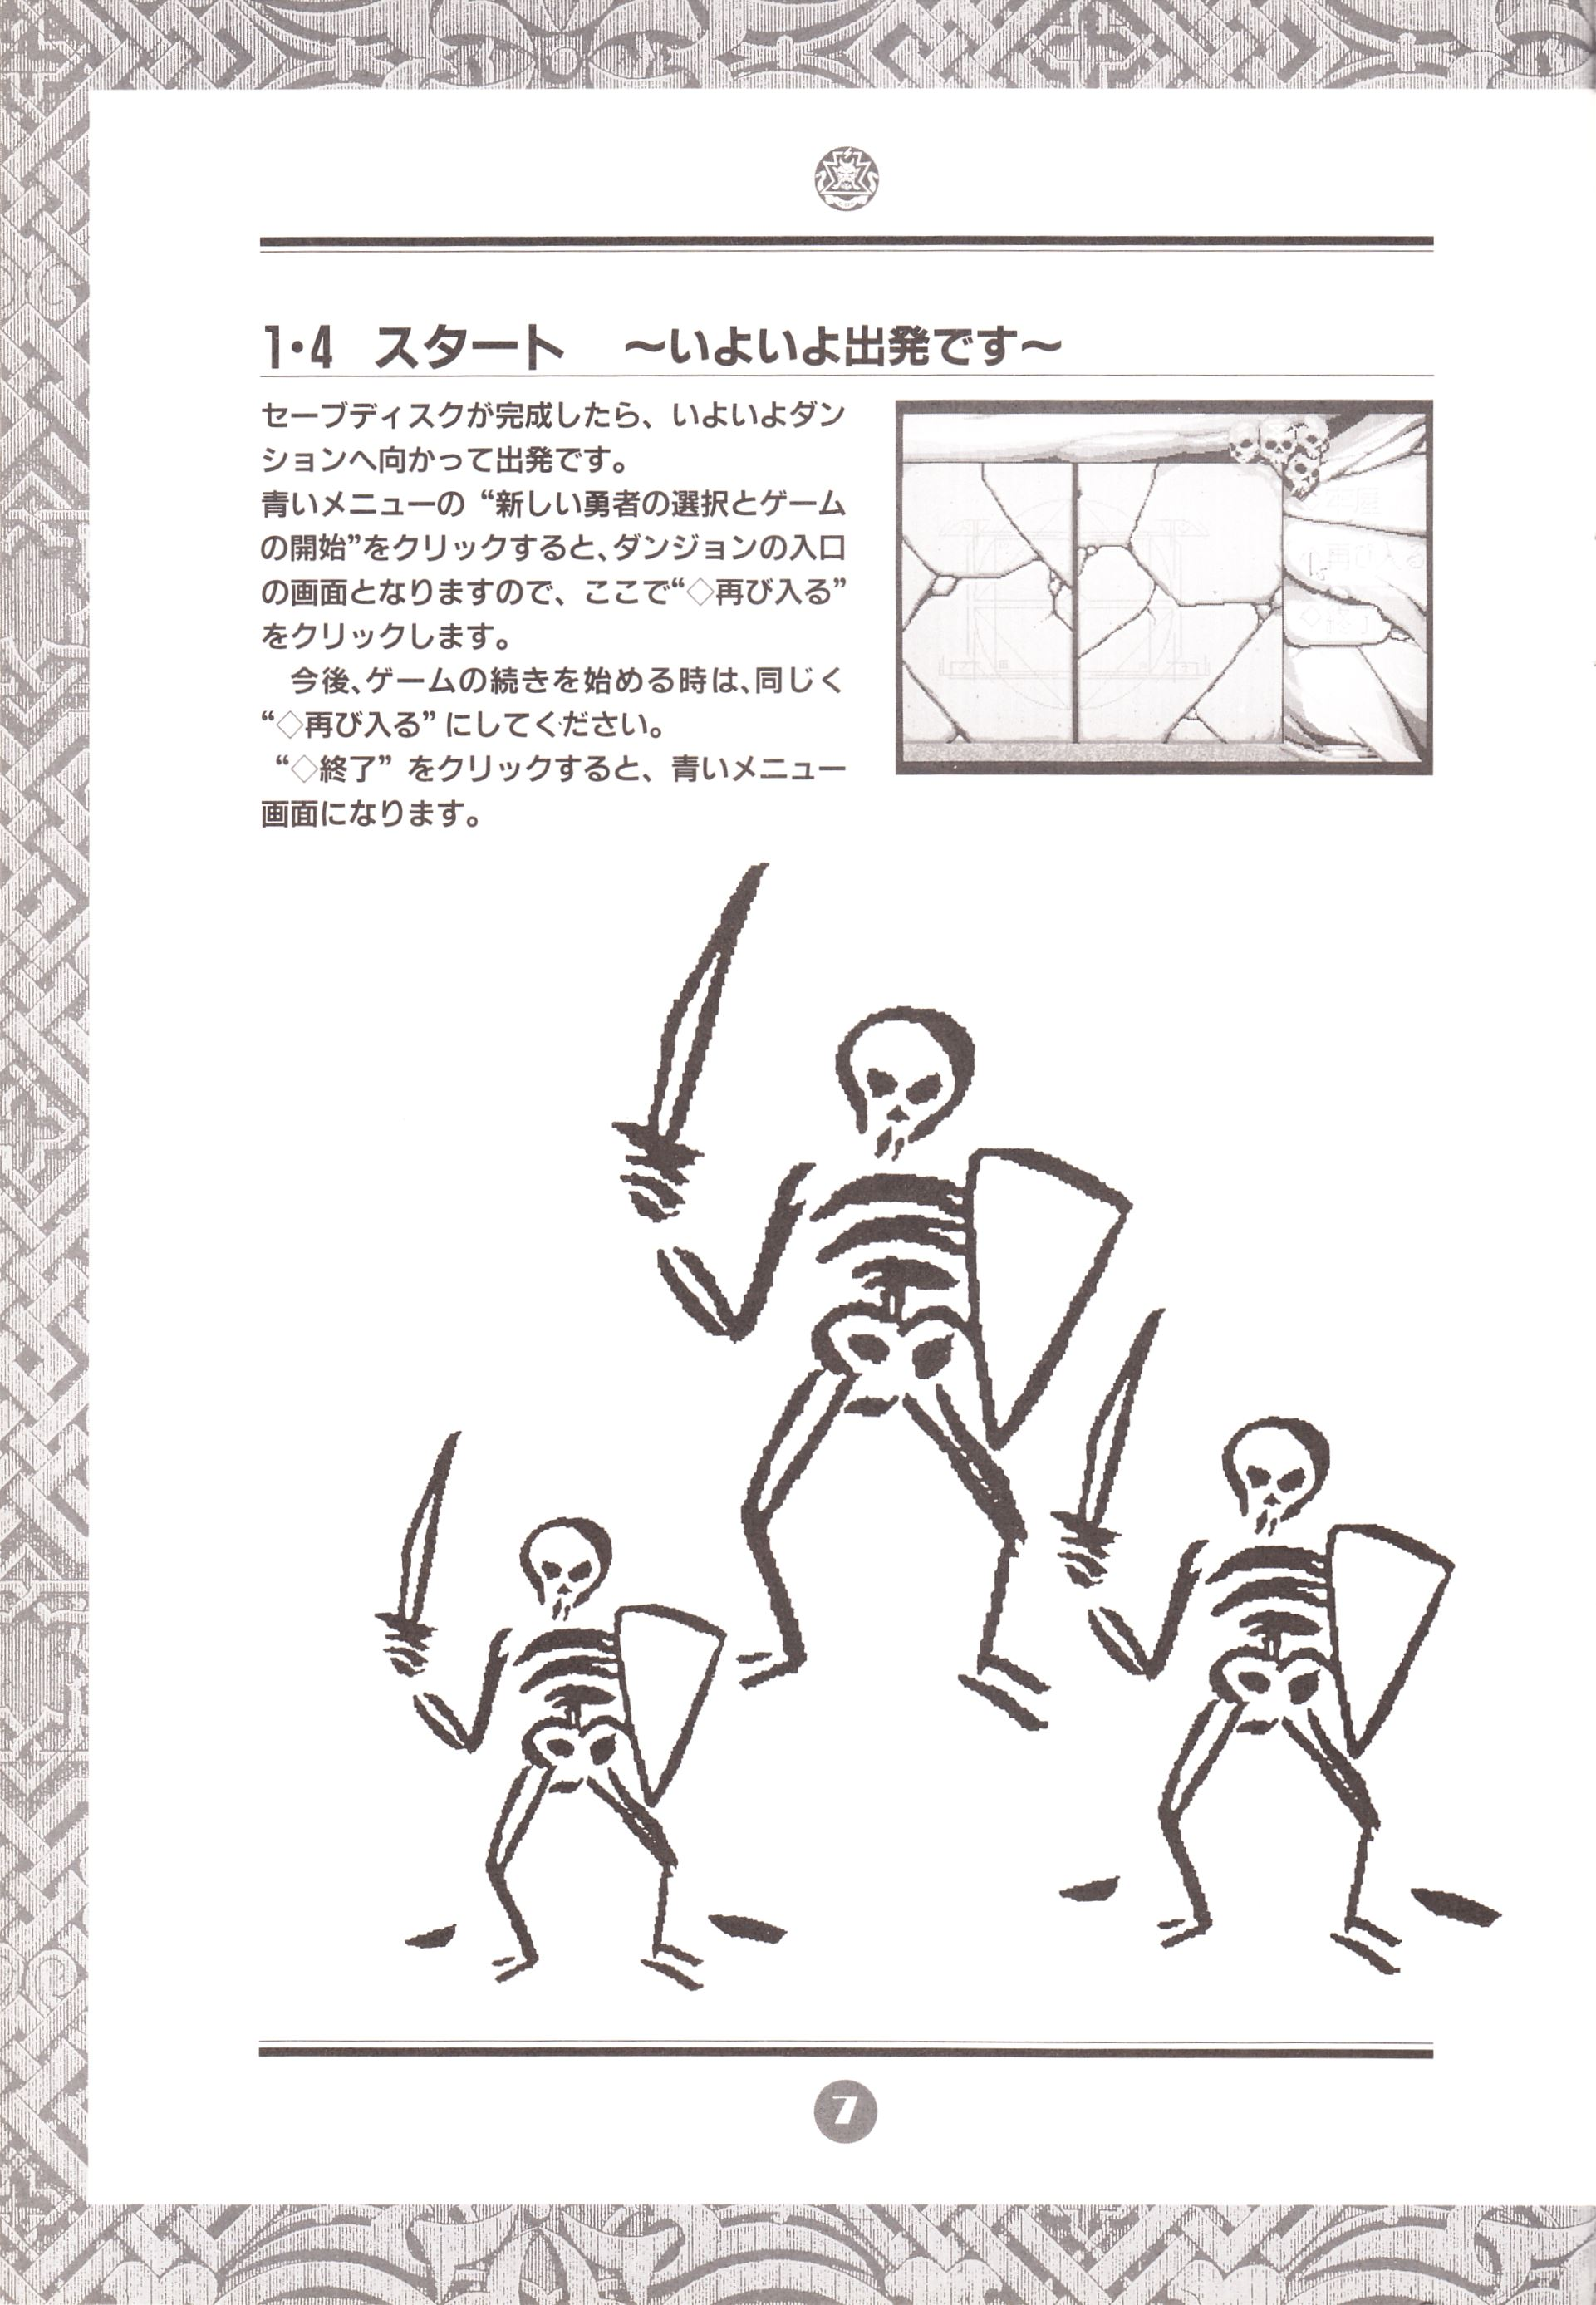 Game - Chaos Strikes Back - JP - PC-9801 - 3-5-inch - An Operation Manual - Page 010 - Scan